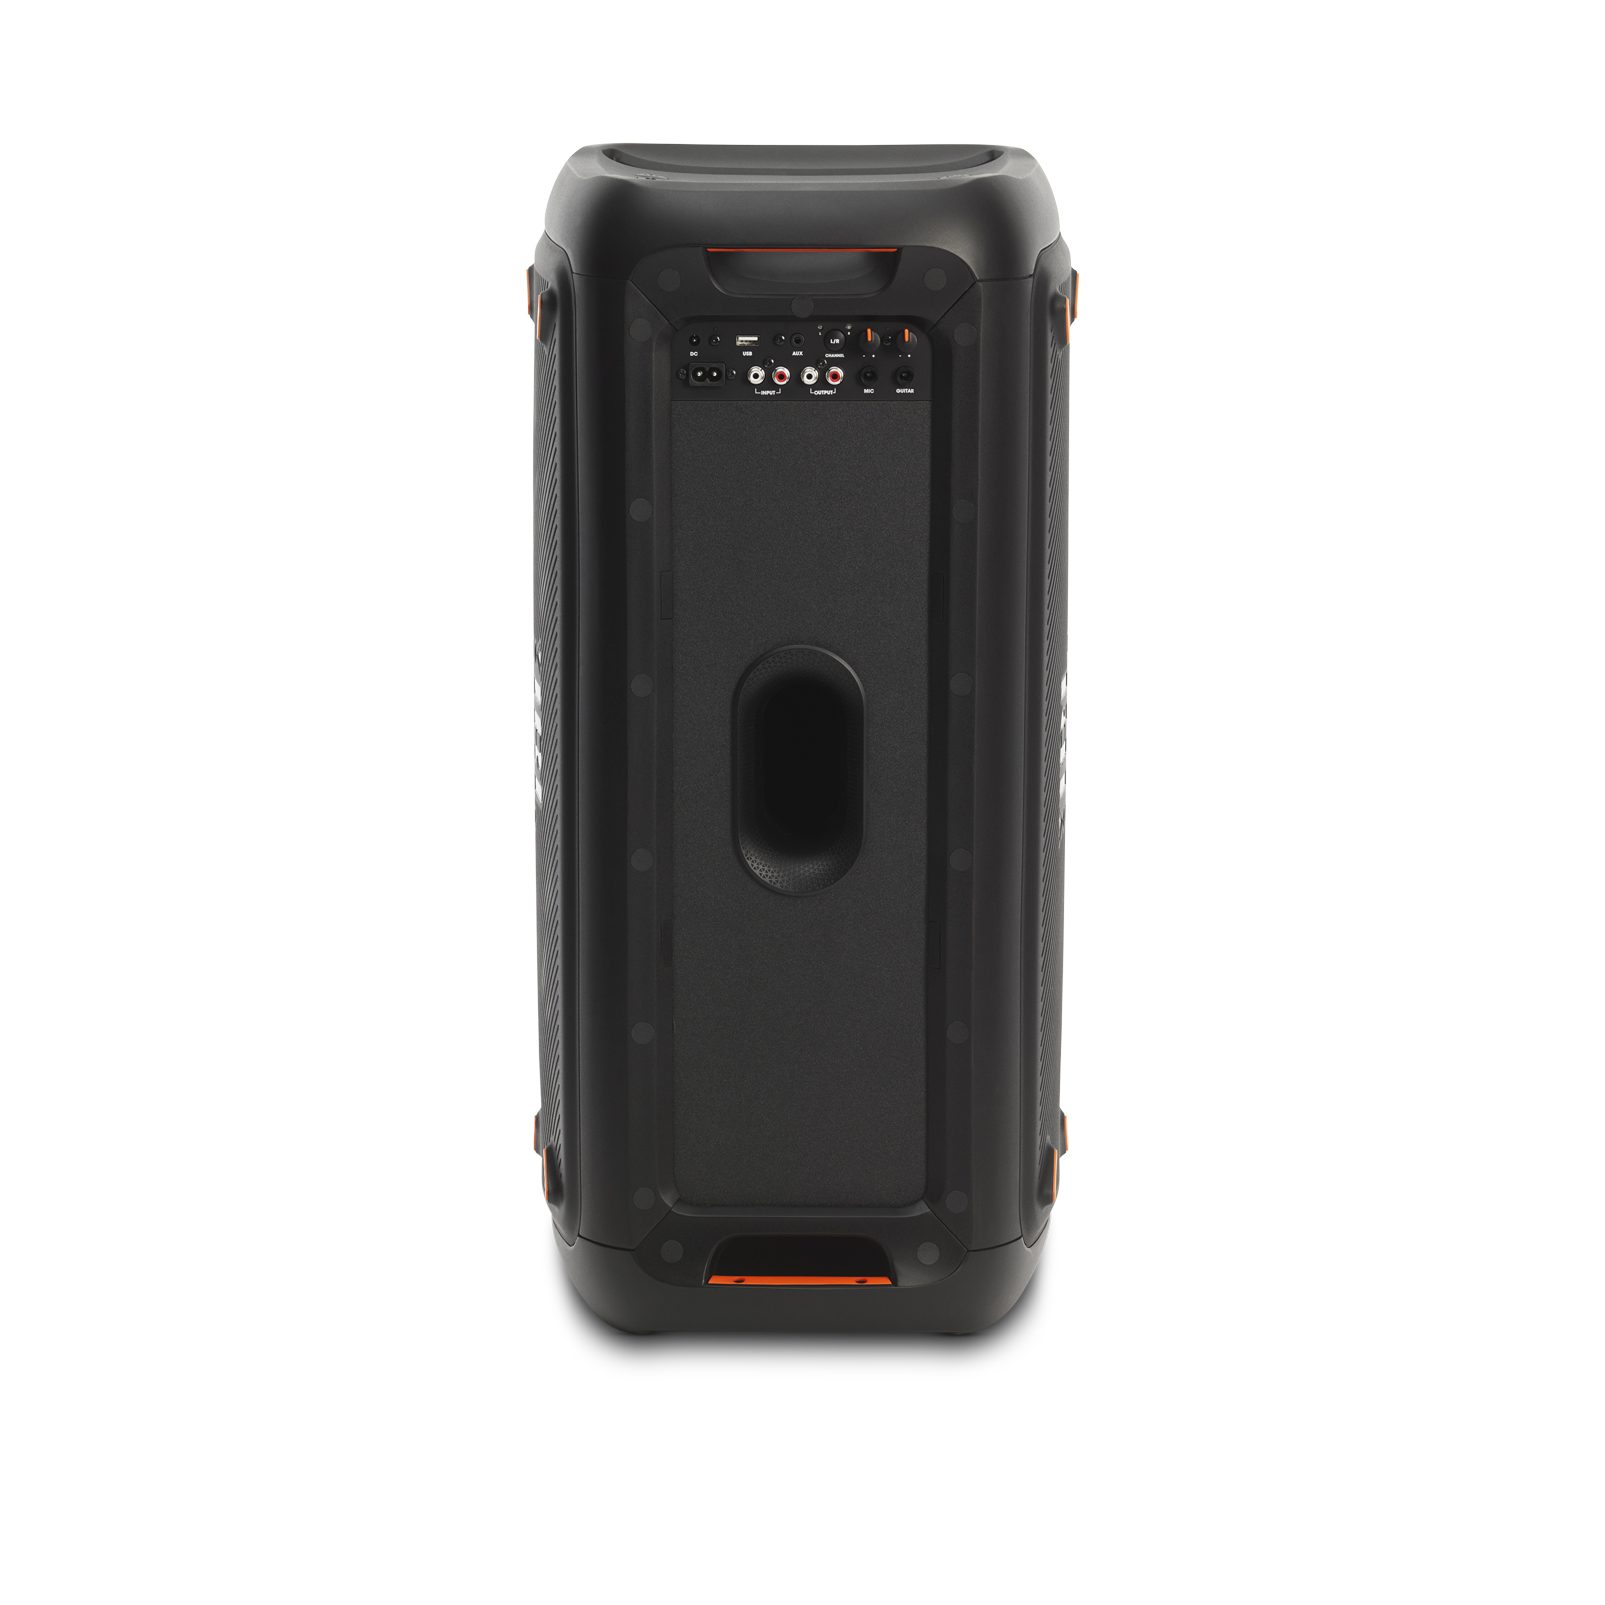 JBL PartyBox 300 - Black - Battery-powered portable Bluetooth party speaker with light effects - Back